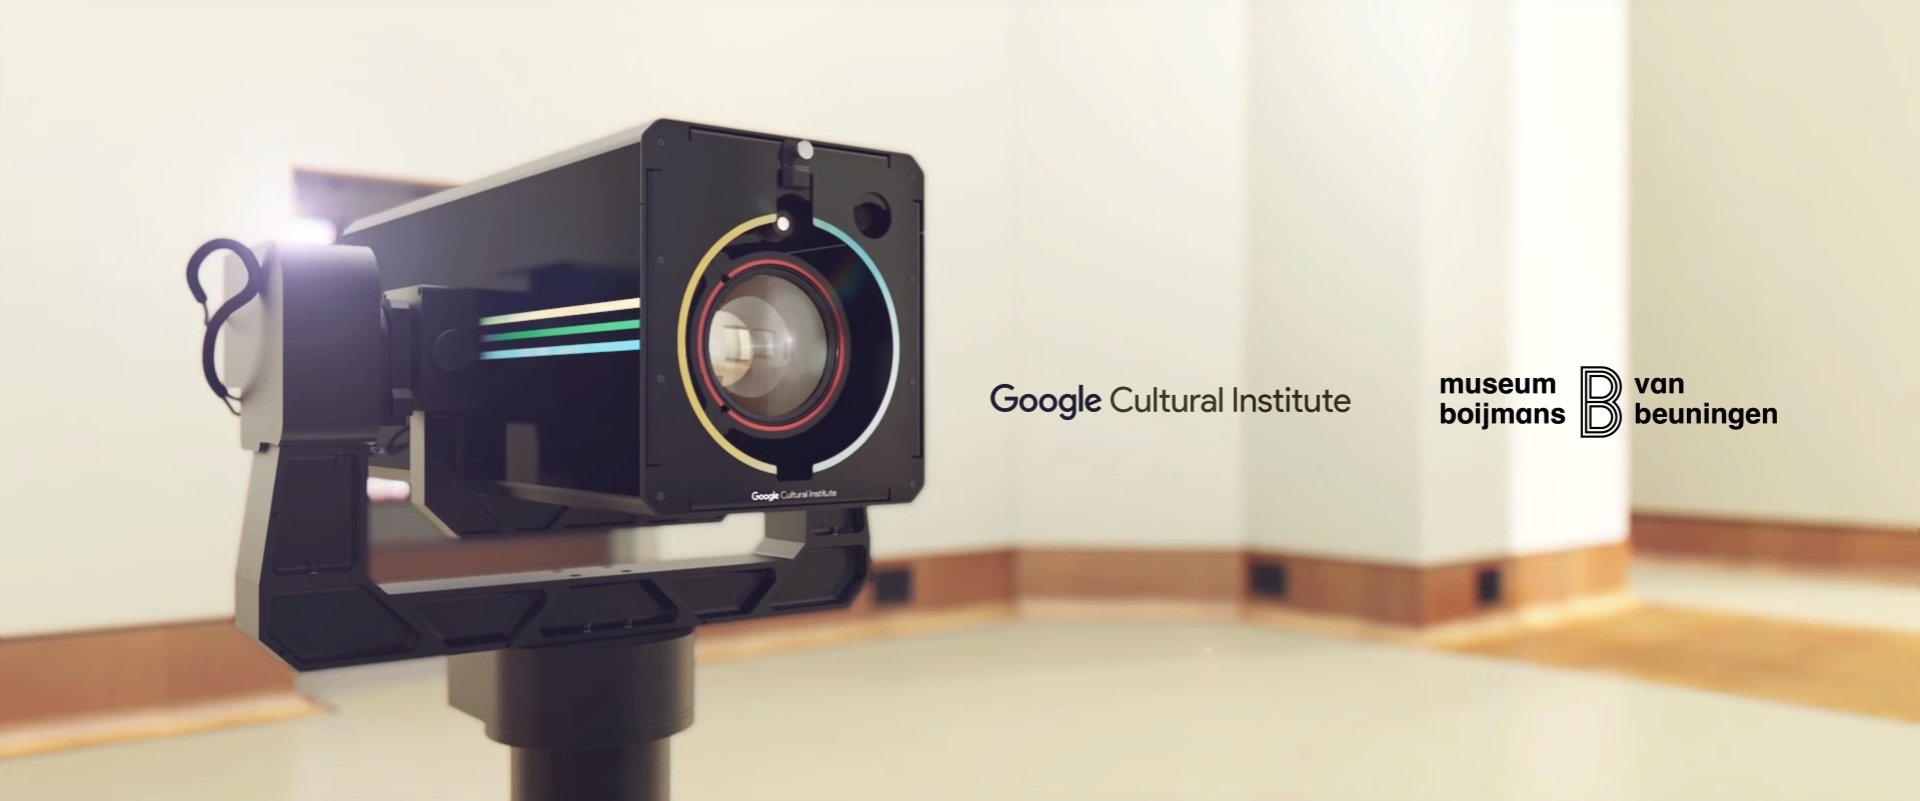 Google Cultural Institute - Art Camera